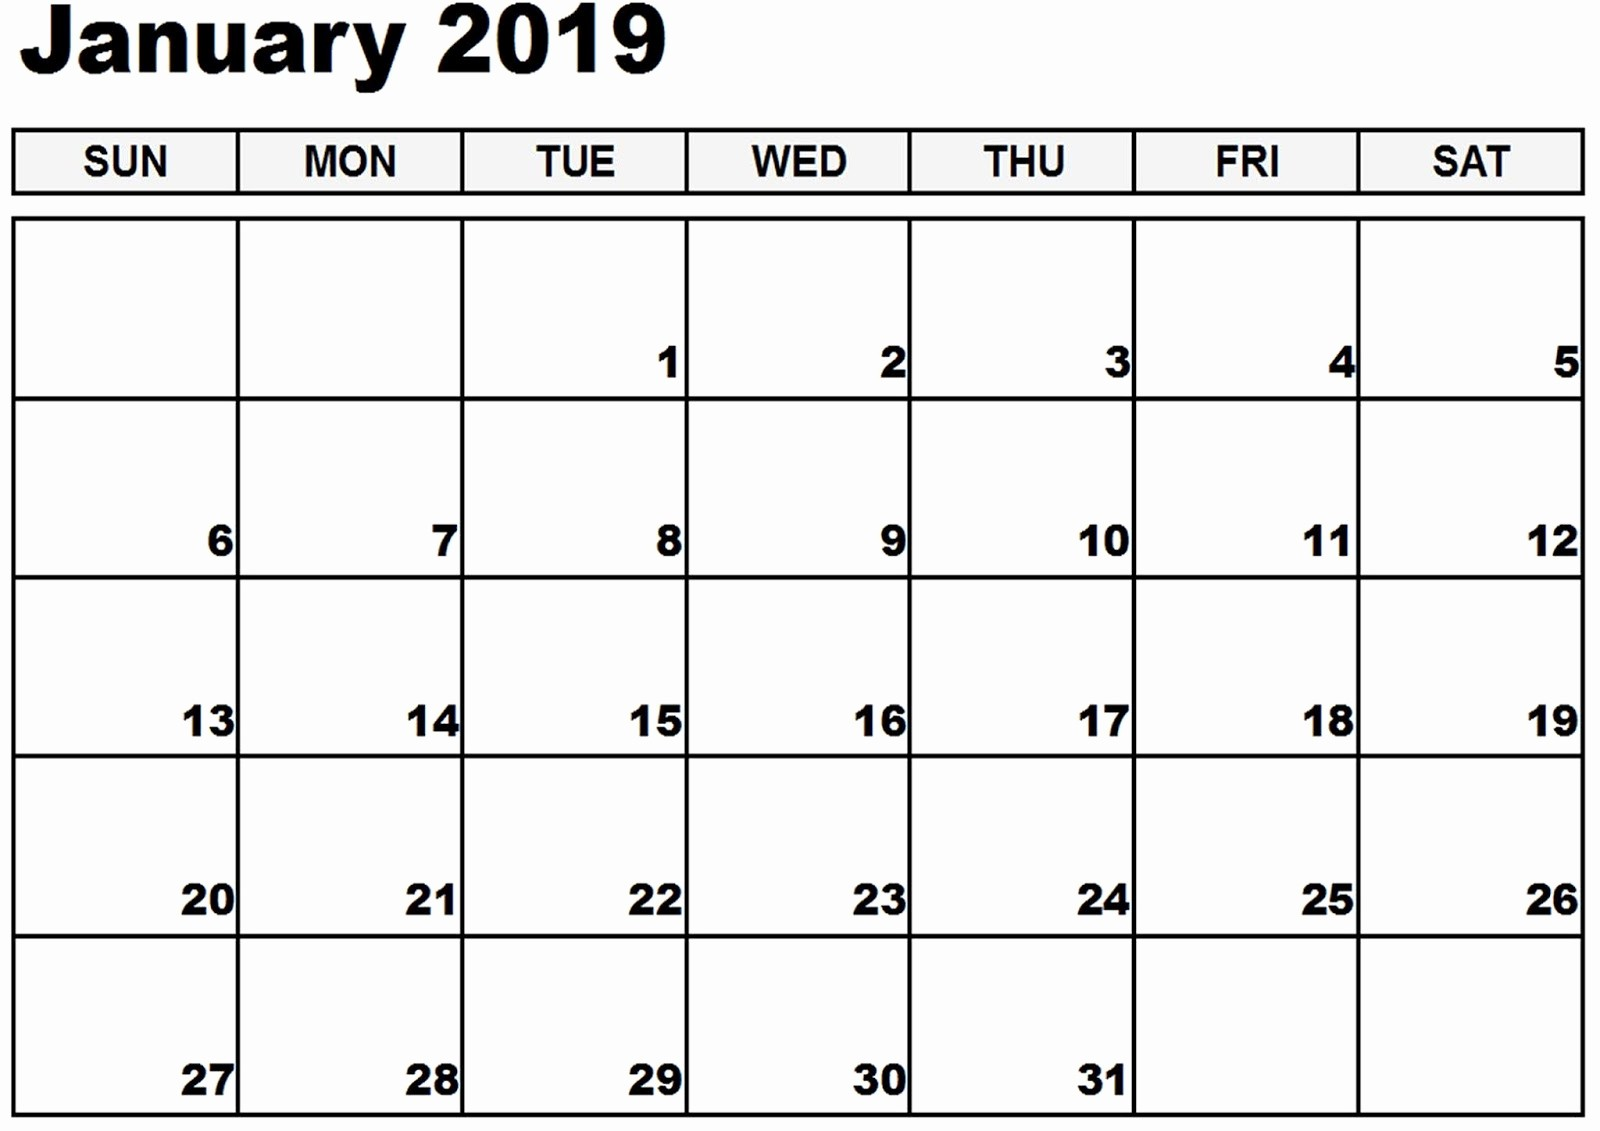 Blank January 2019 Calendar Template Luxury January 2019 Blank Calendar Free Download